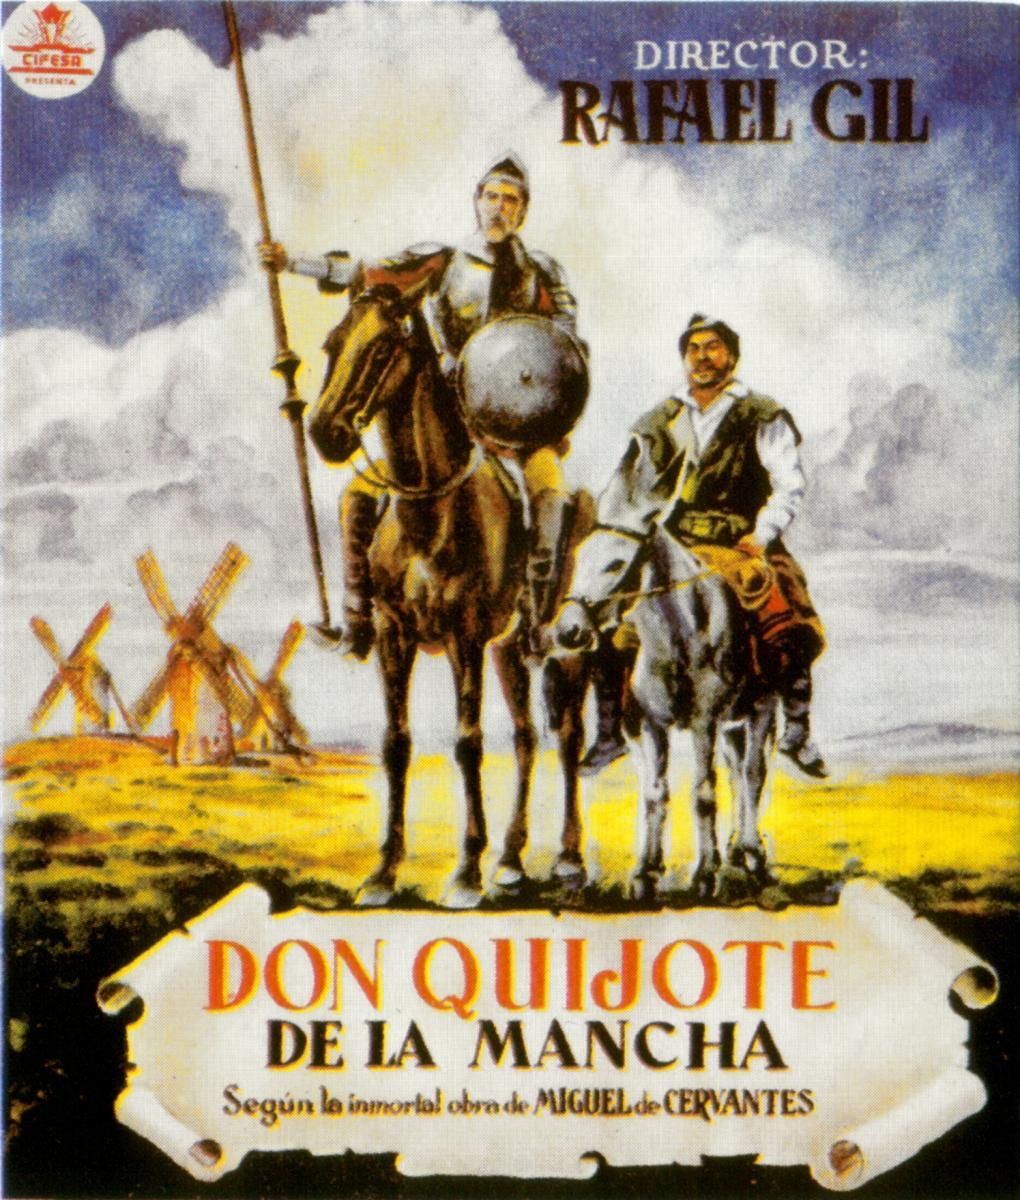 essays on don quijote de la mancha Miguel de cervantes don quijote through the story of don quixote de la mancha the essay intends to trace and to comprehend the subtle interplay of wit.